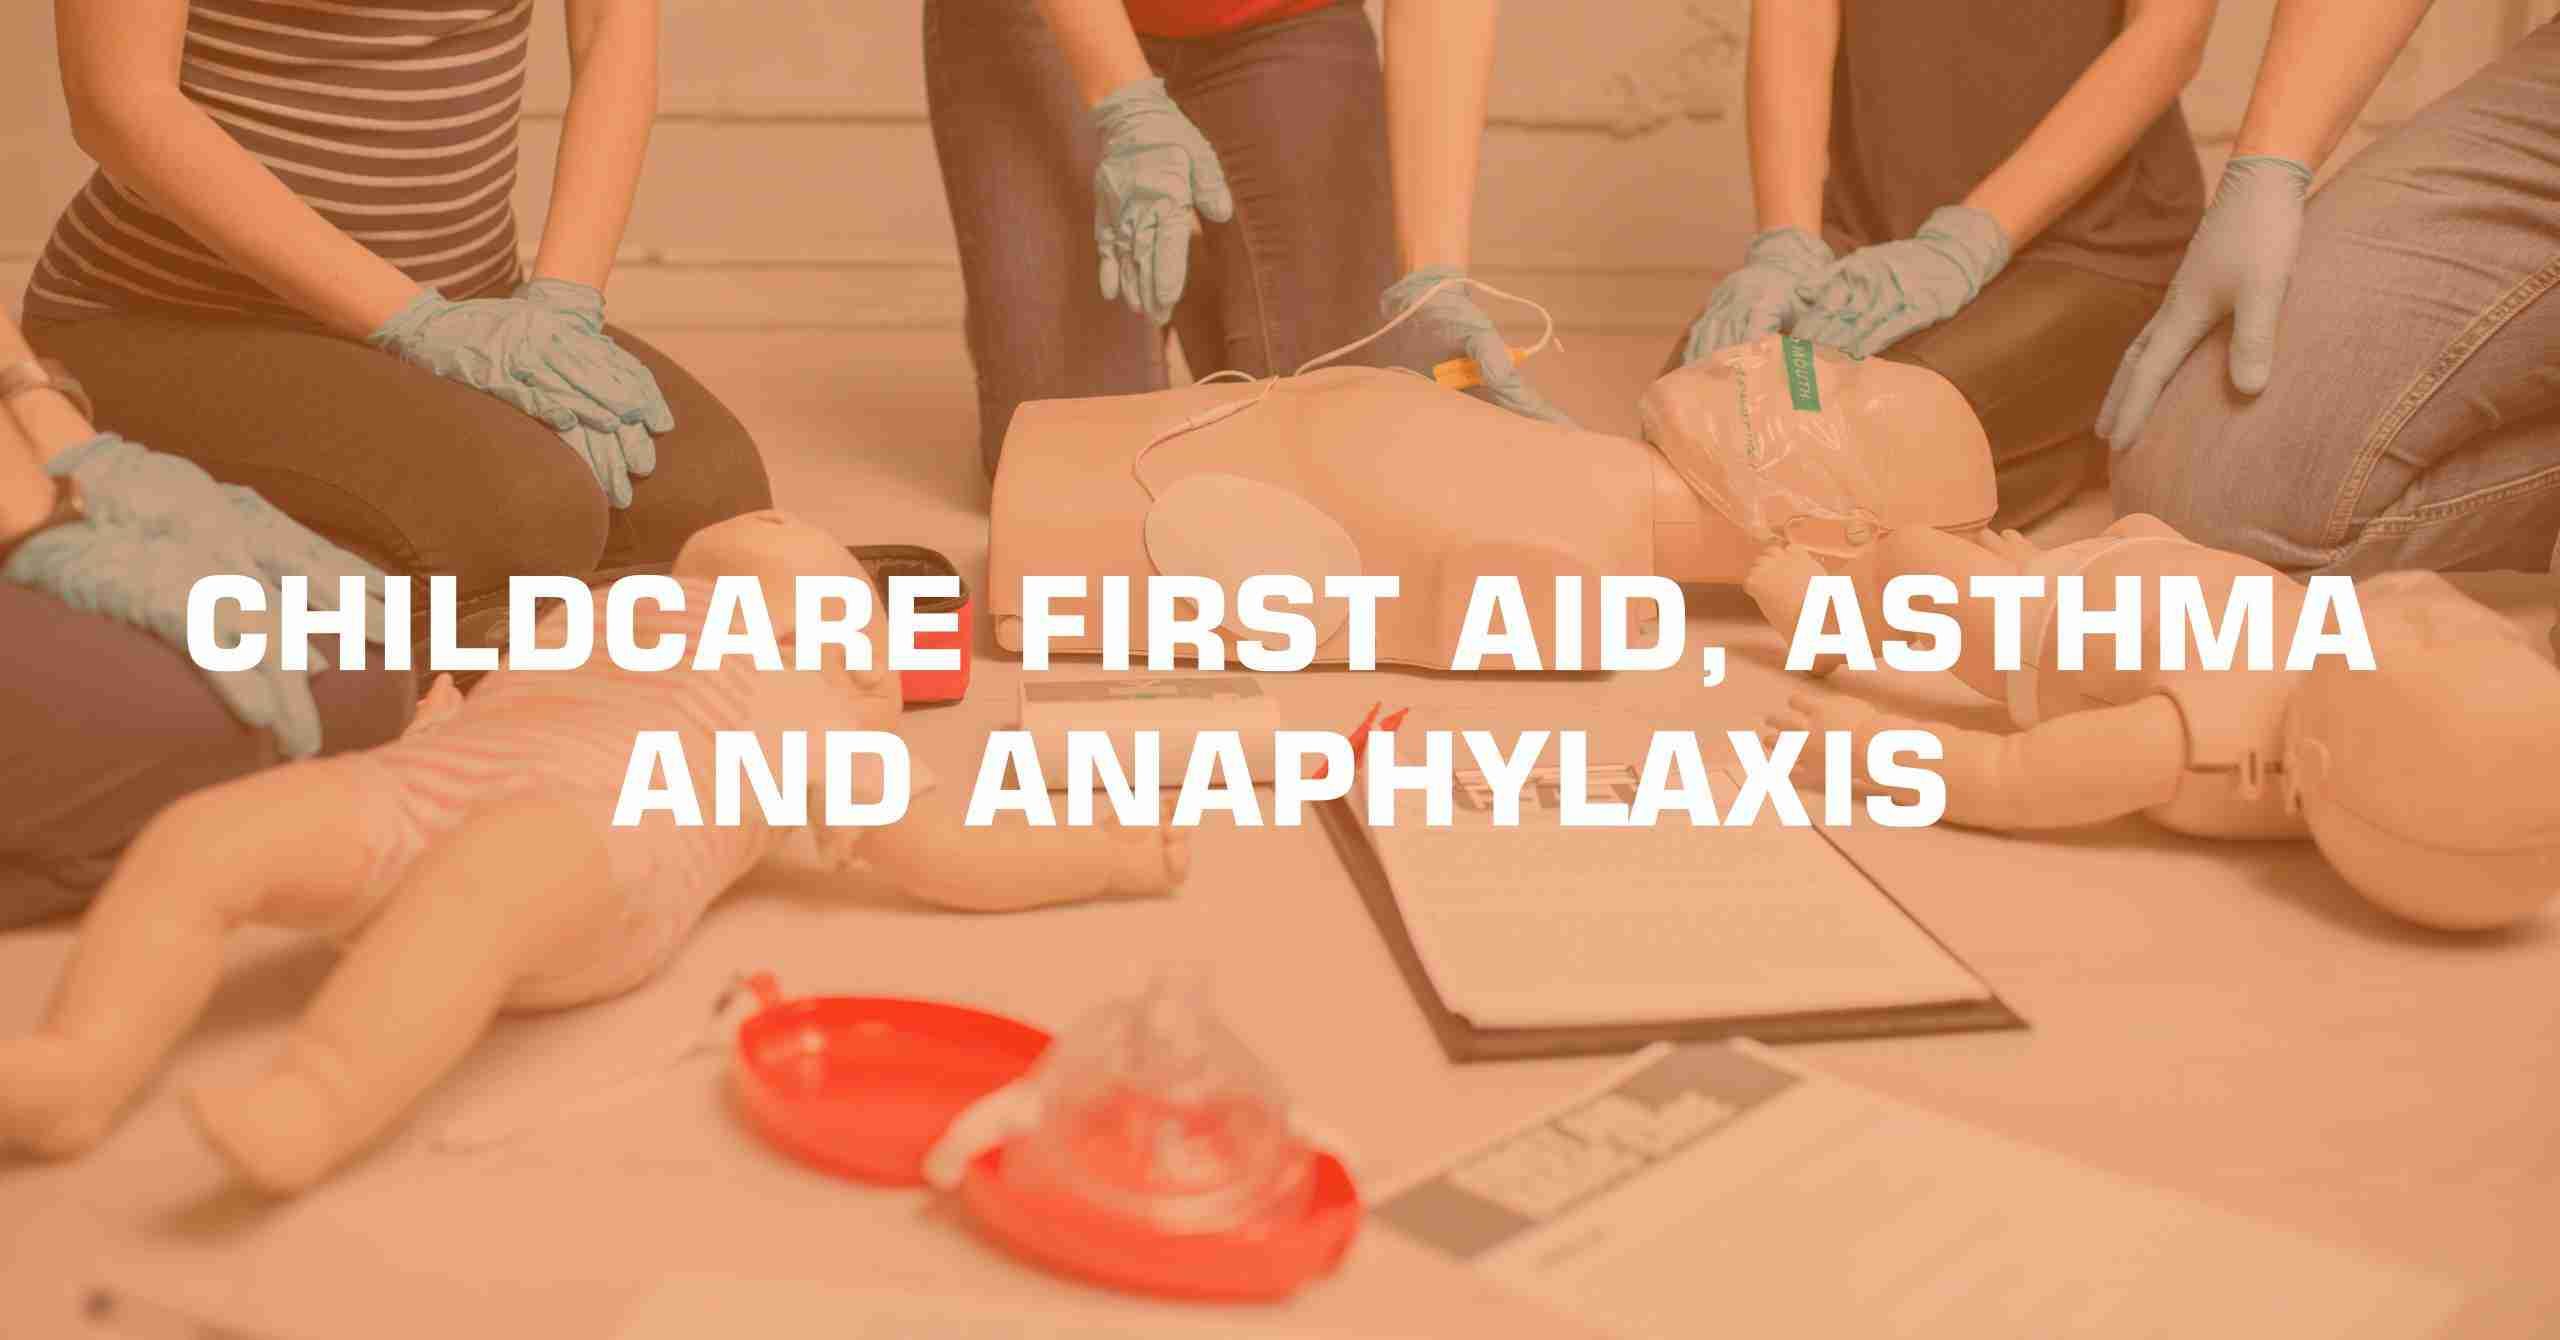 CHILDCARE FIRST AID ASTHMA AND ANAPHYLAXIS min scaled